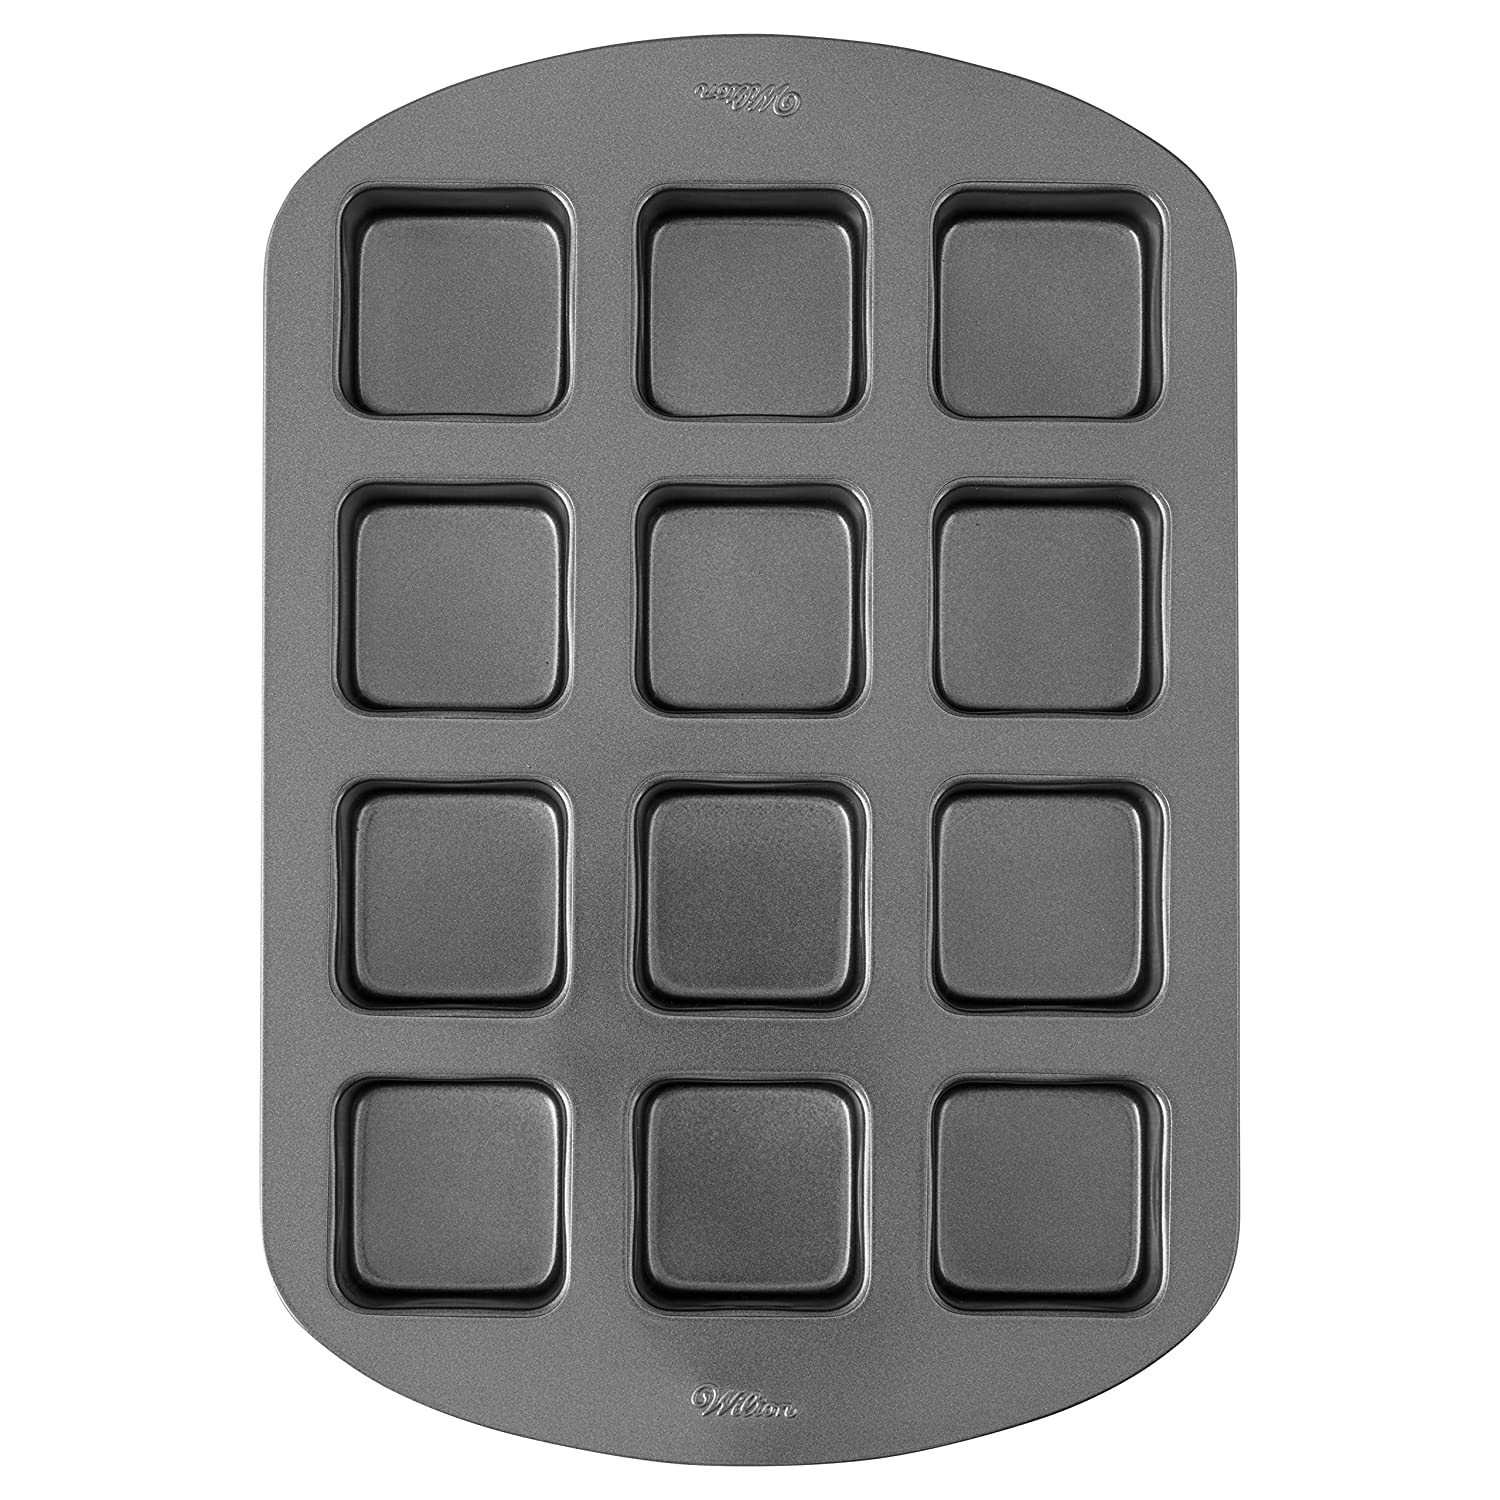 Wilton Brownie Bar Pan 2105-0693